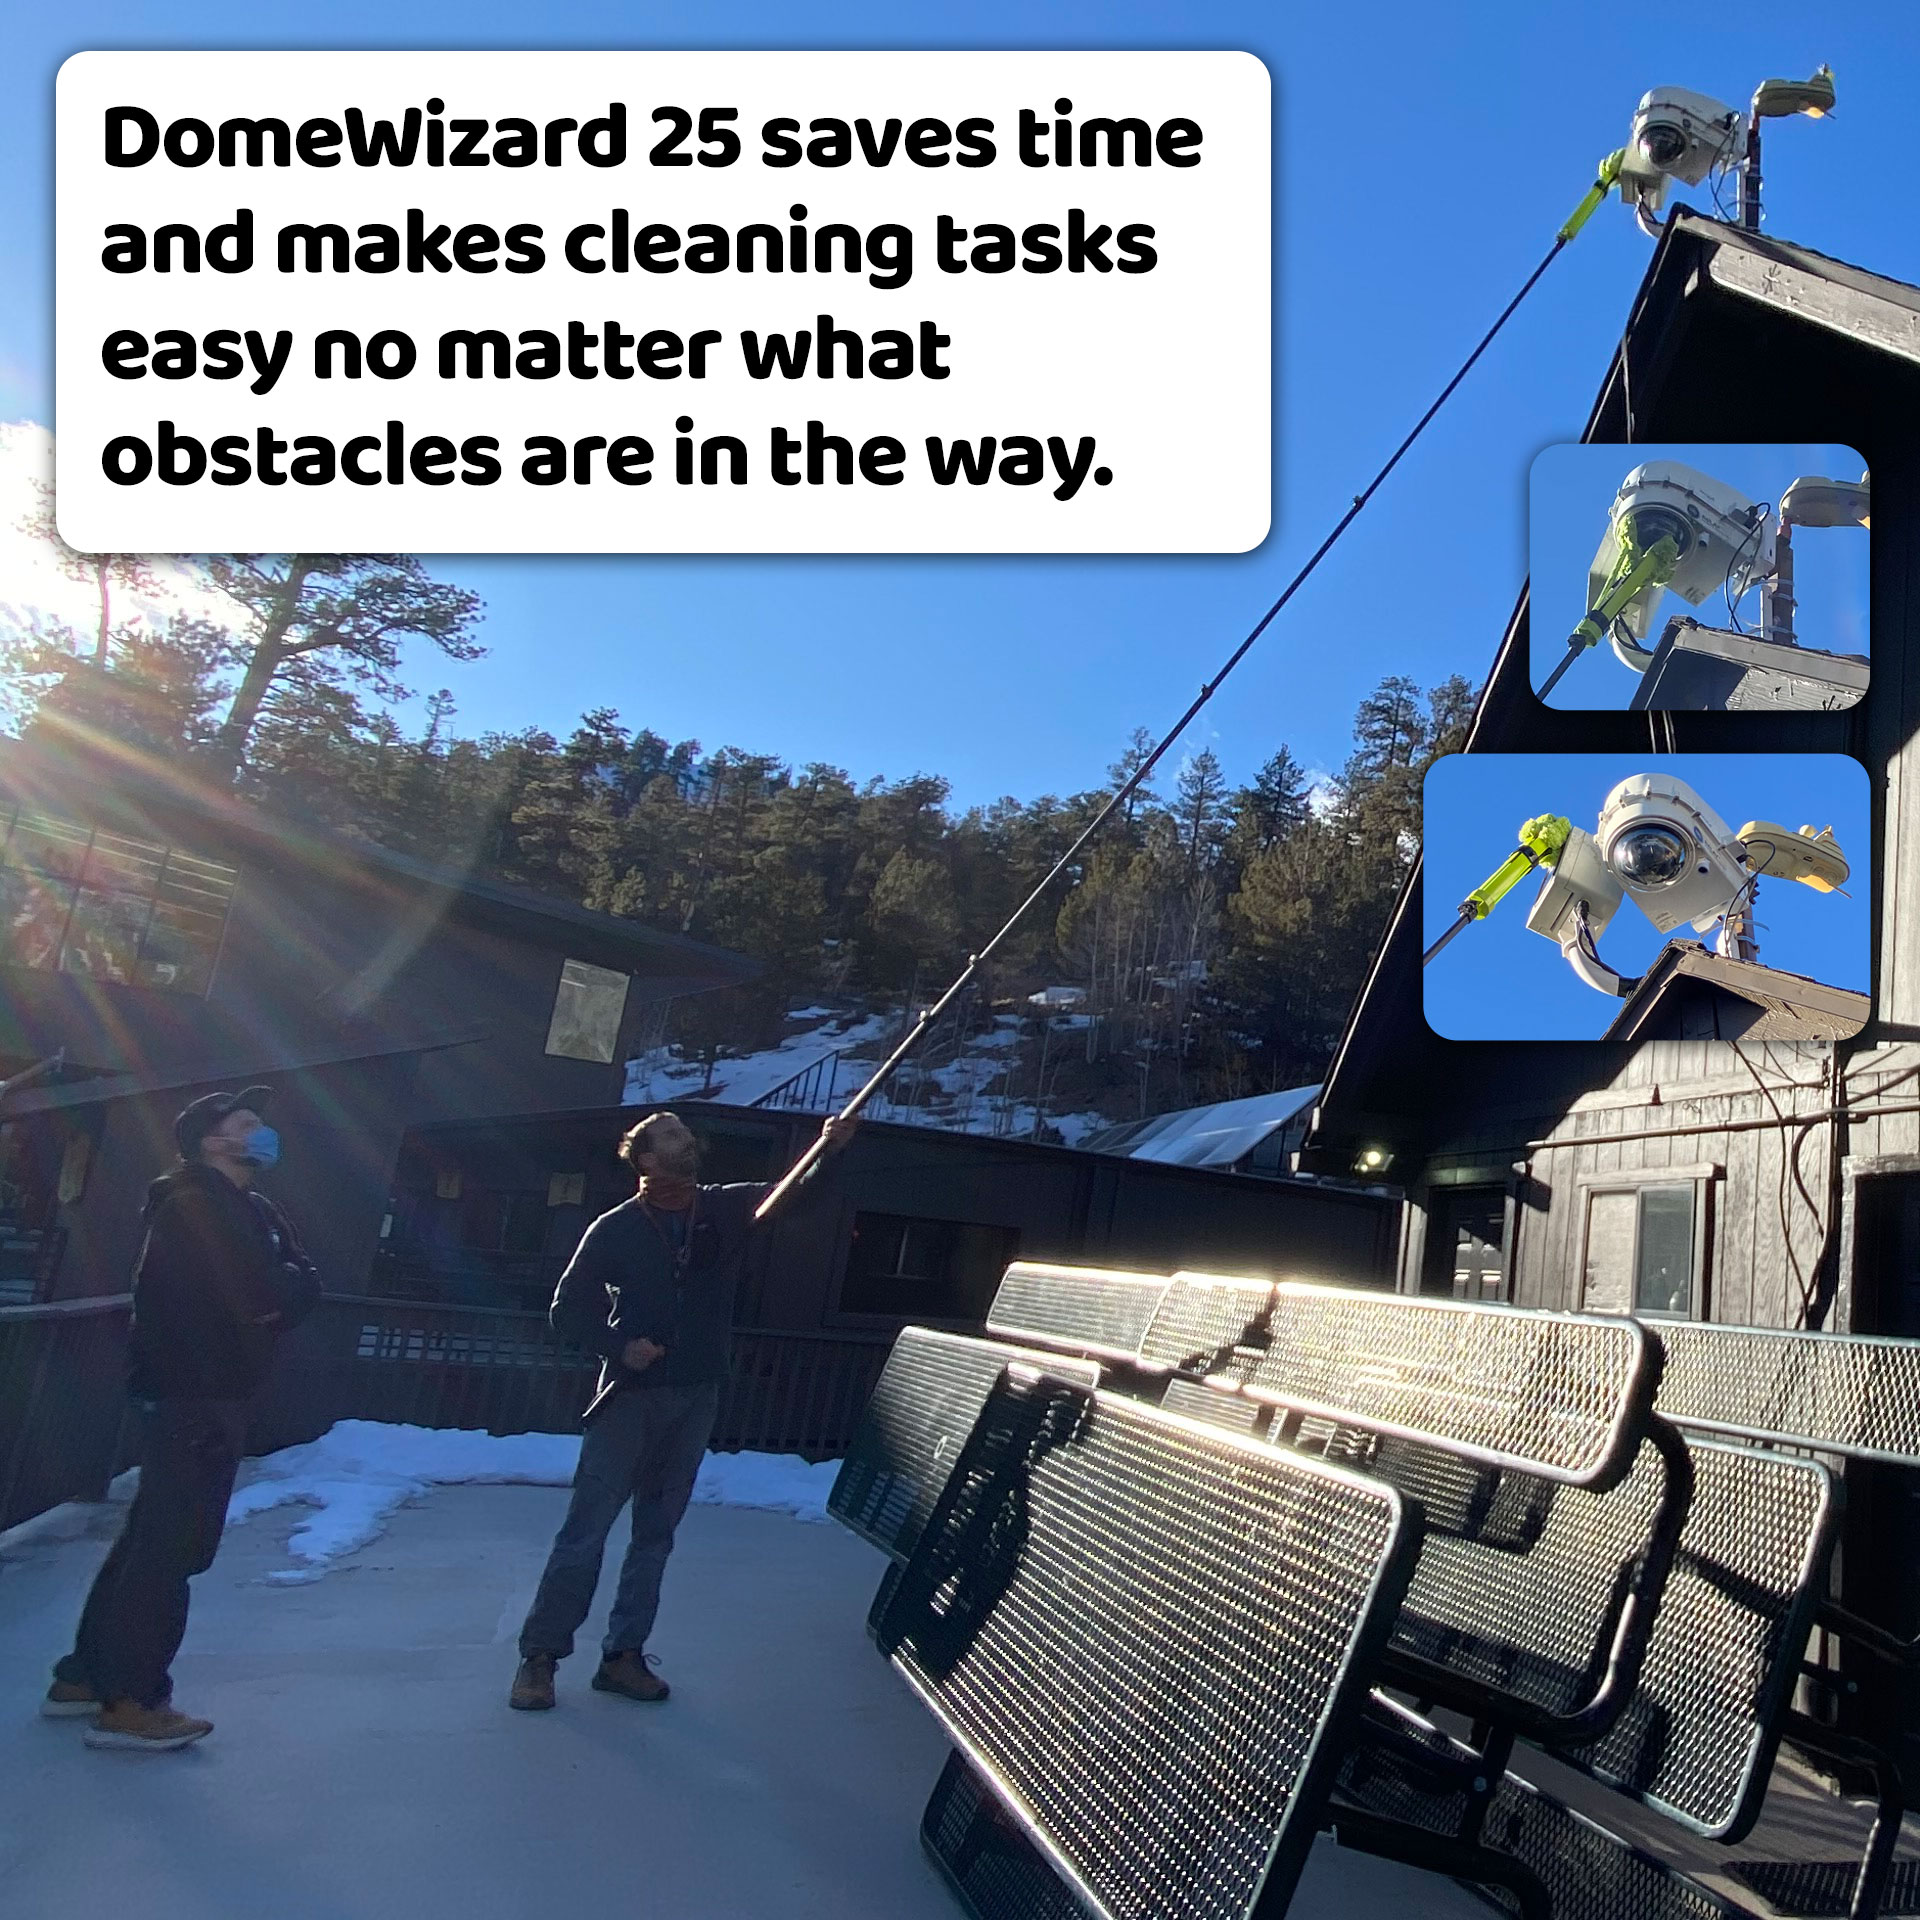 DomeWizard 25 saves time and makes cleaning tasks easy no matter what obstacles are in the way